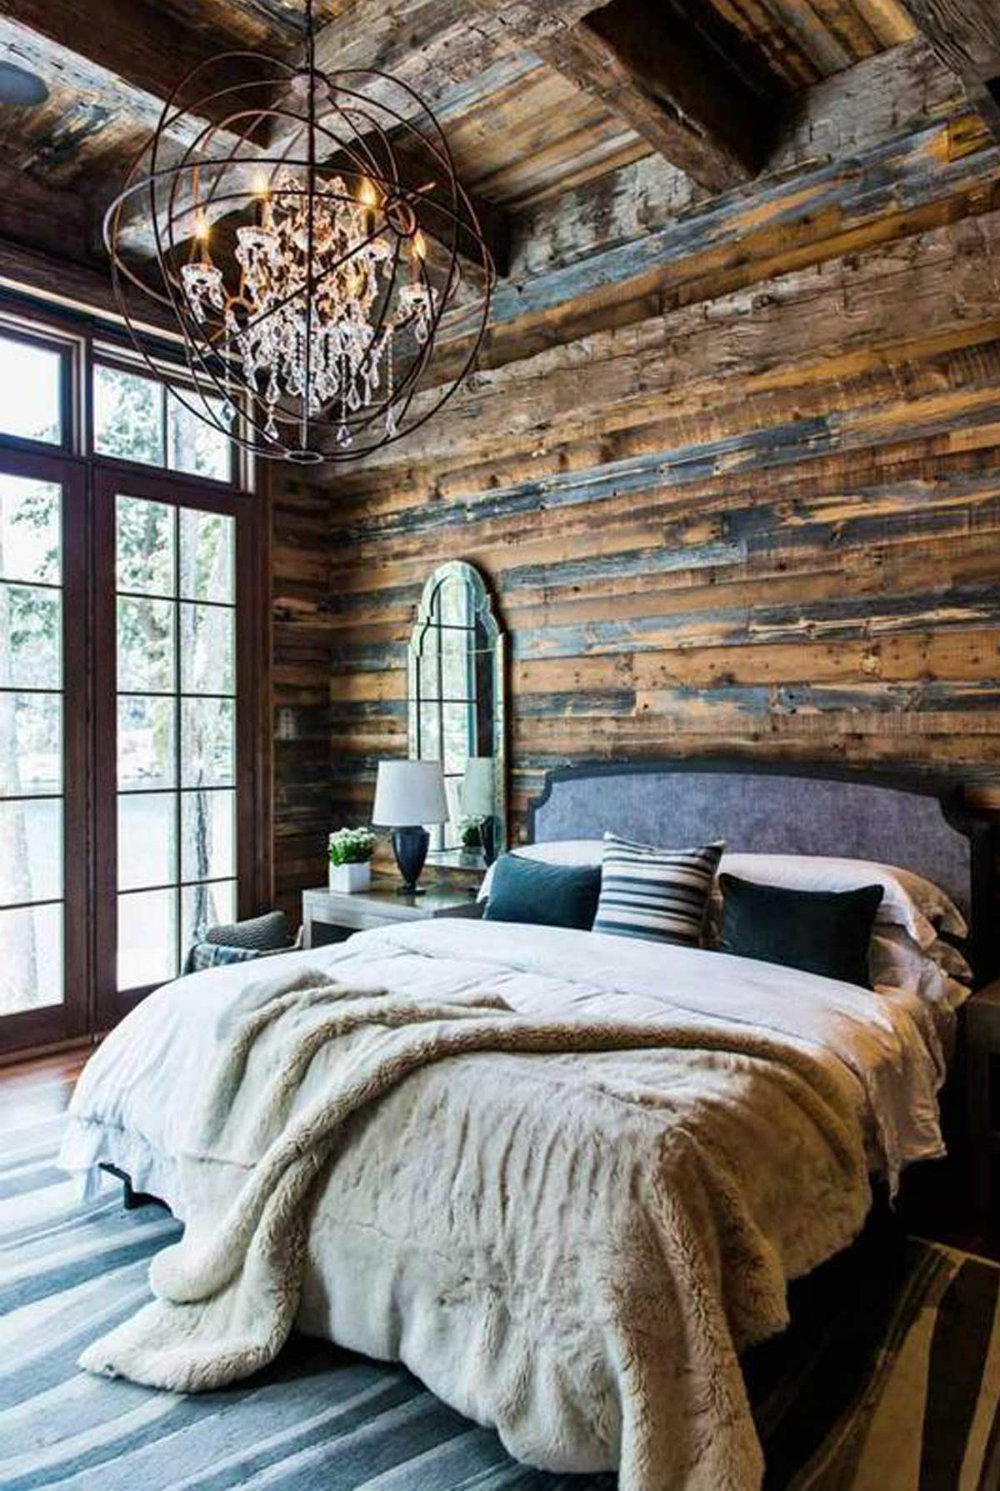 5 Cozy-Chic Interiors You Will Love 05 Cozy-Chic Interiors 5 Cozy-Chic Interiors You Will Love 5 Cozy Chic Interiors You Will Love 05 1